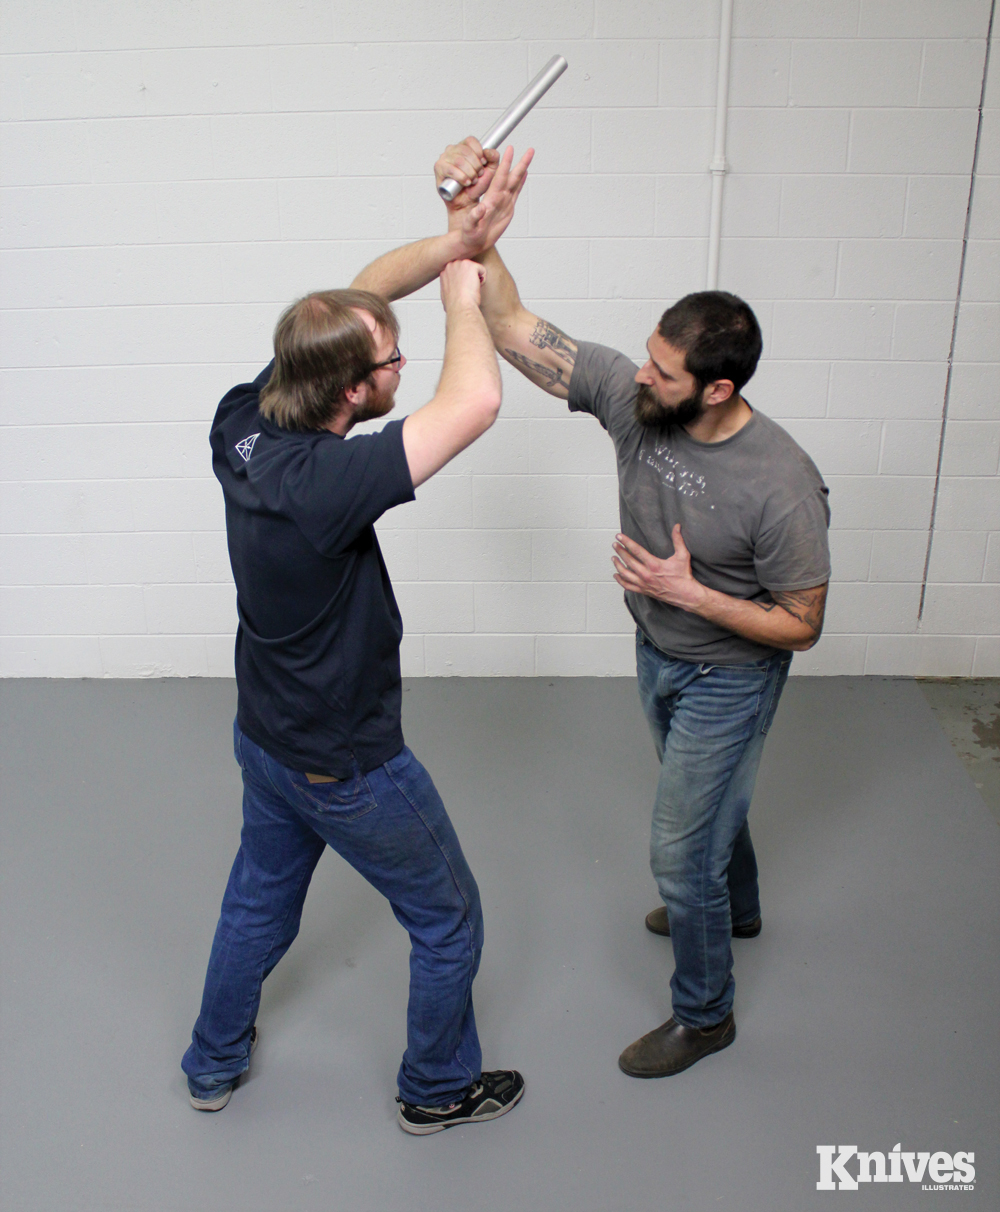 In this traditional technique, the defender blocks the attack with a Roof Block while cutting T the assailant's wrist.